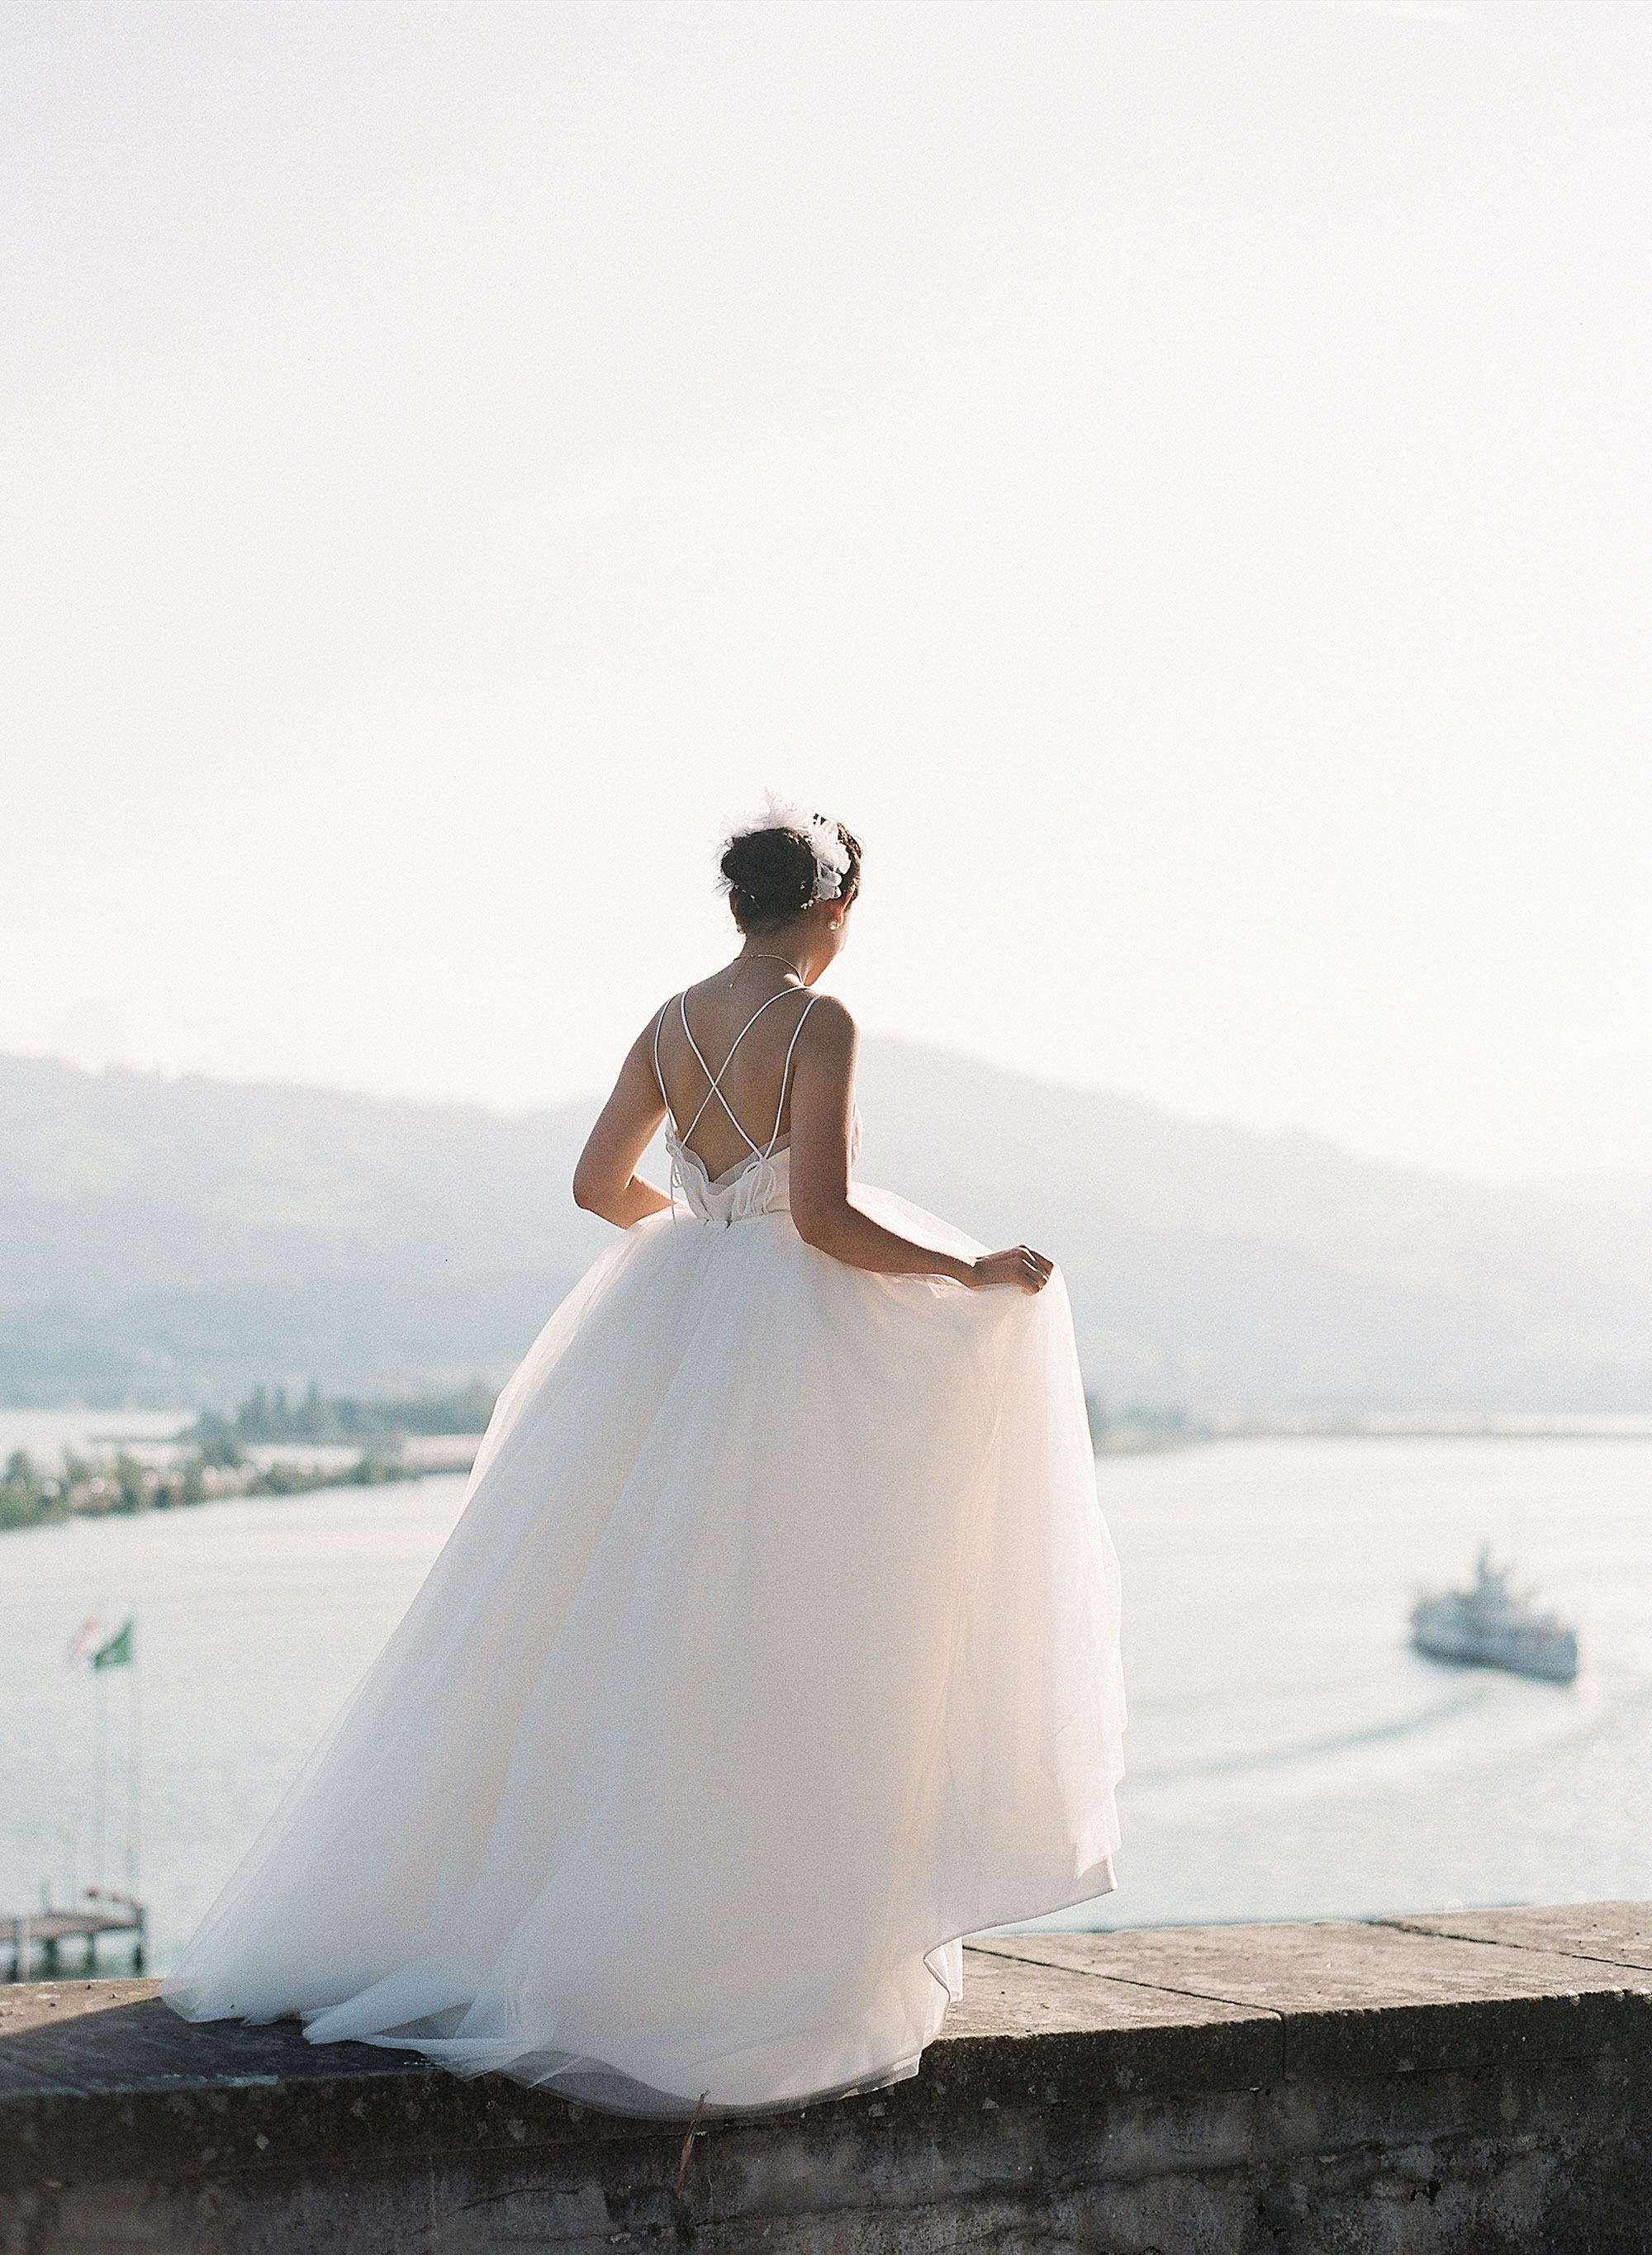 best_wedding_pictures_2018_zurich_Oksana_Bernold_035.jpg